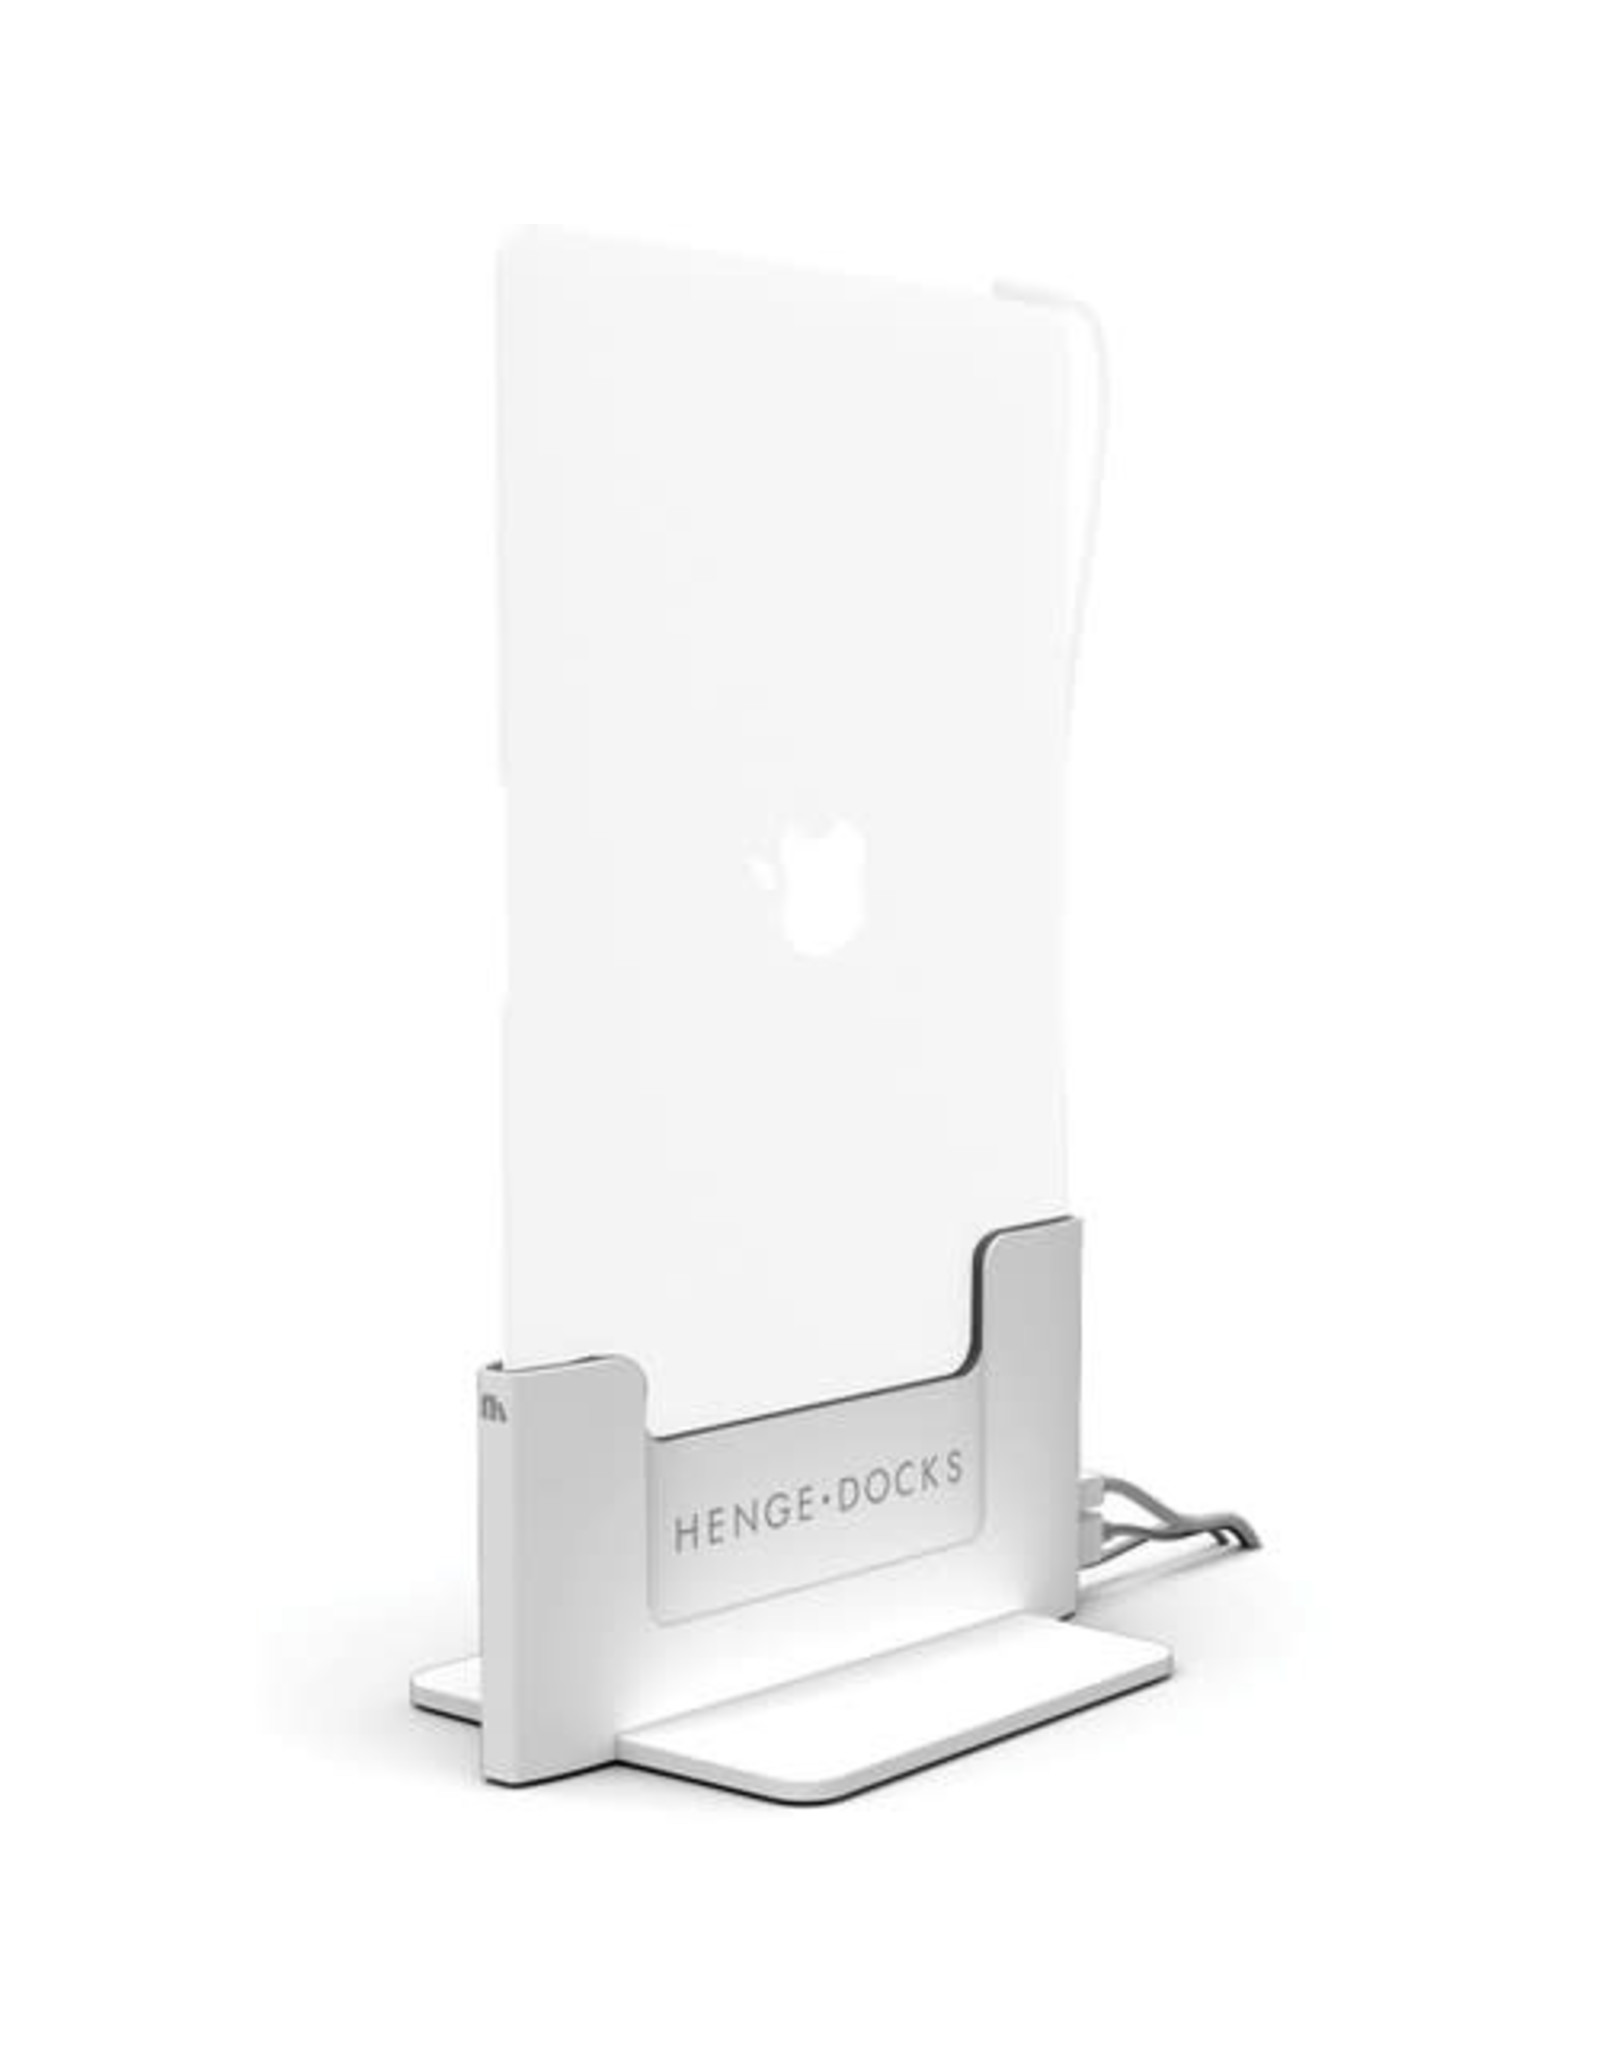 "Brydge Hengedocks Docking Station for MacBook Air 13"" (2011-current USB3.0) EOL"